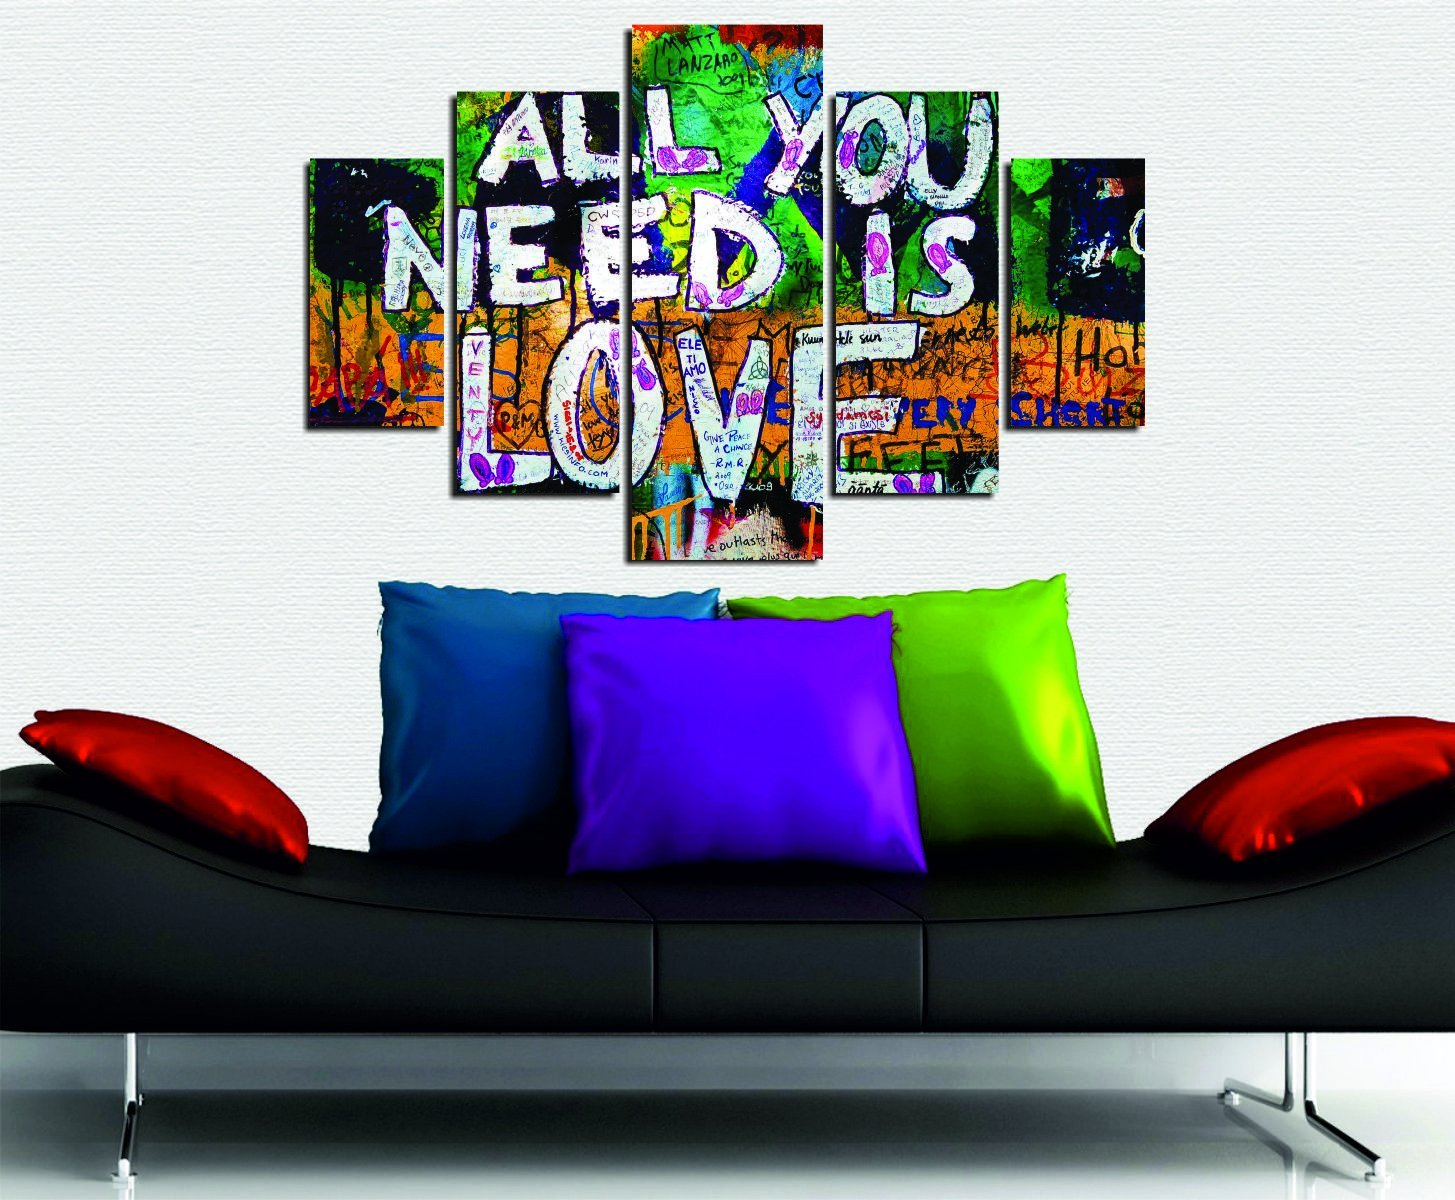 LaModaHome Graffiti MDF Wall Art - All You Need is Love, Colorful, Writing - Ready to Hang Painting, Total Size (36'' x 22'') - 5 Panels - Wall Hanging for Living Room, Bedroom, Dorm